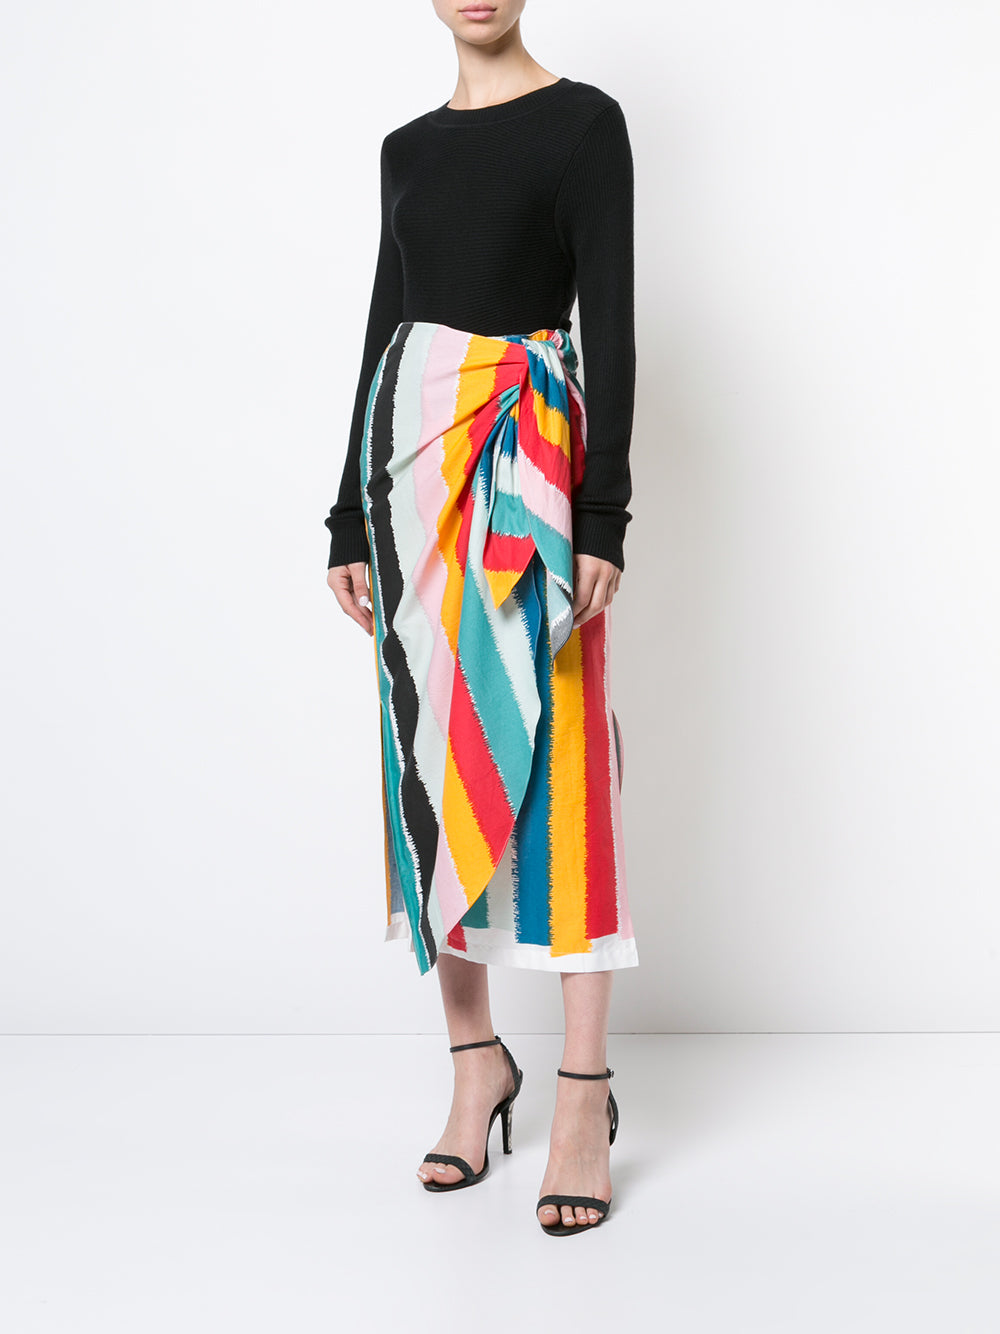 Sarong Skirt *Pre-Order, Available 3/15